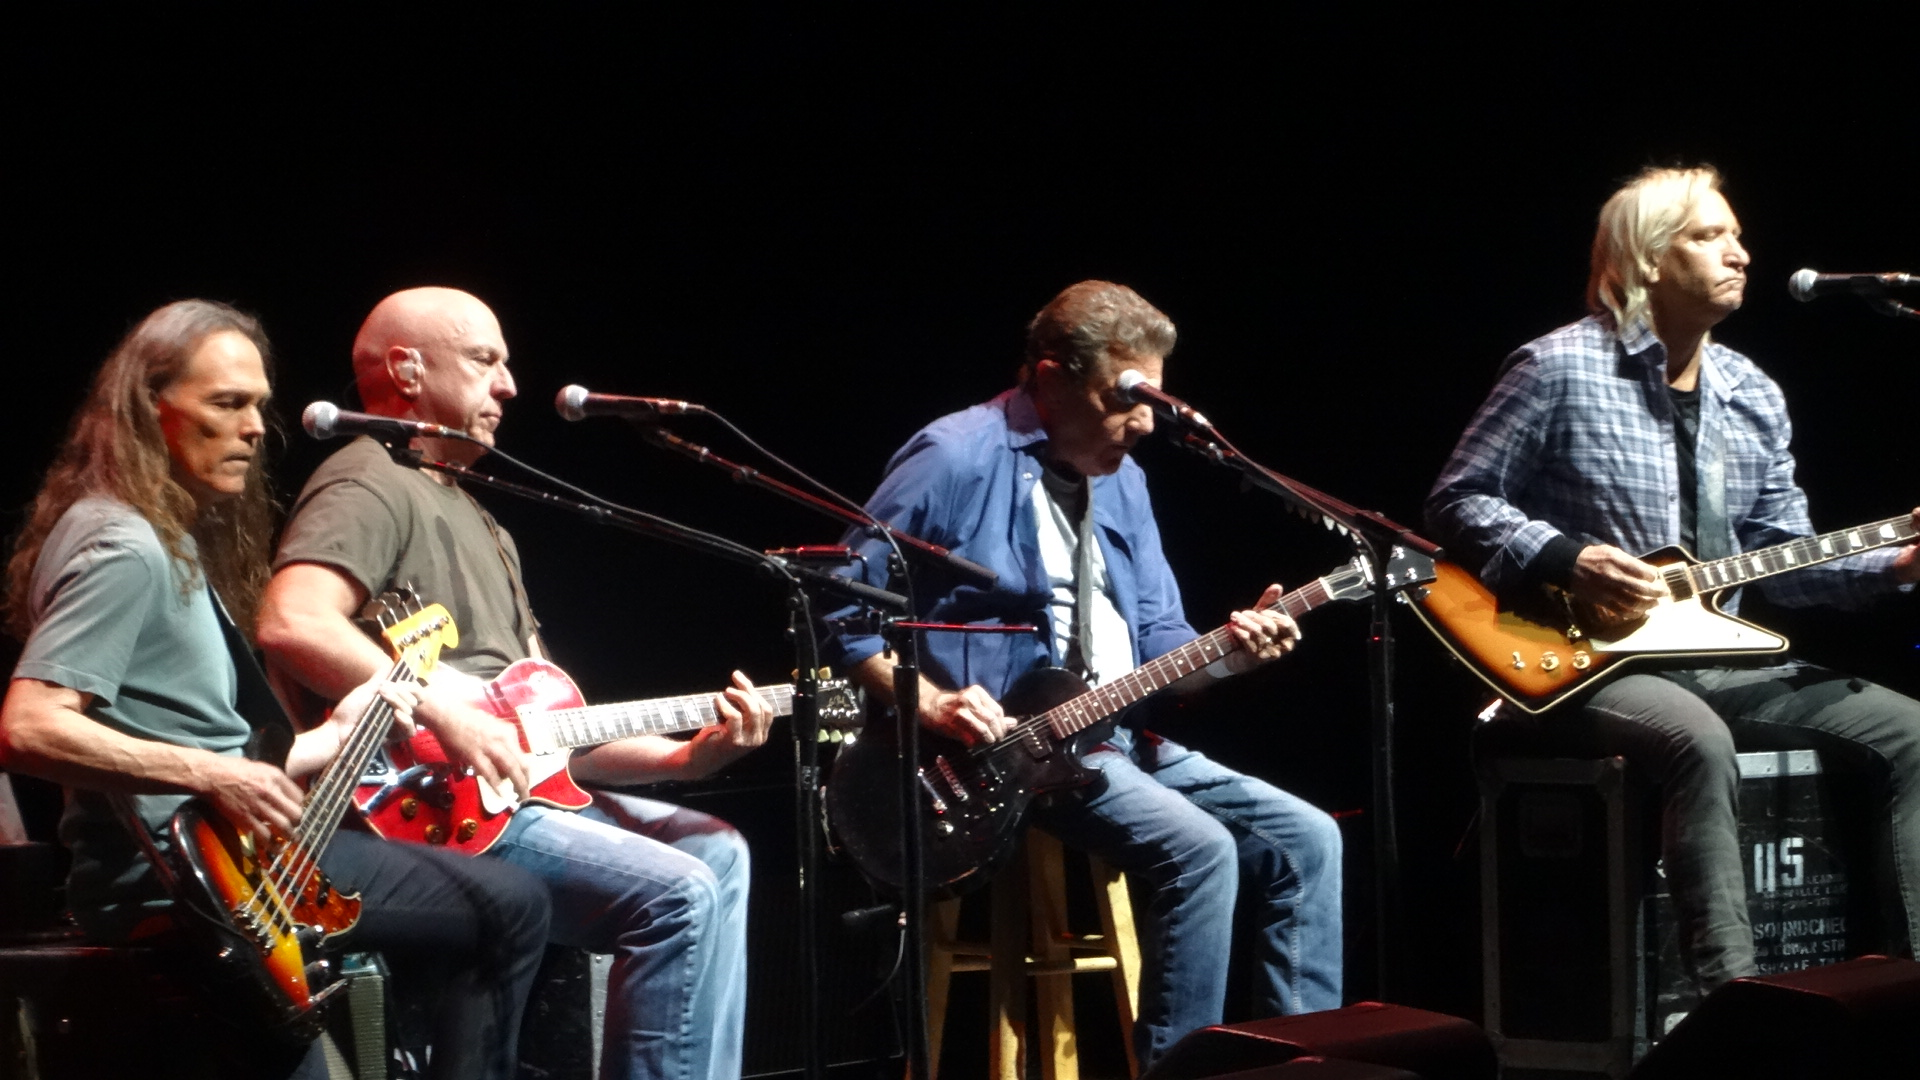 History of the Eagles tour, 2014, joined by Bernie Leadon (second from left). Henley on drums not pictured.